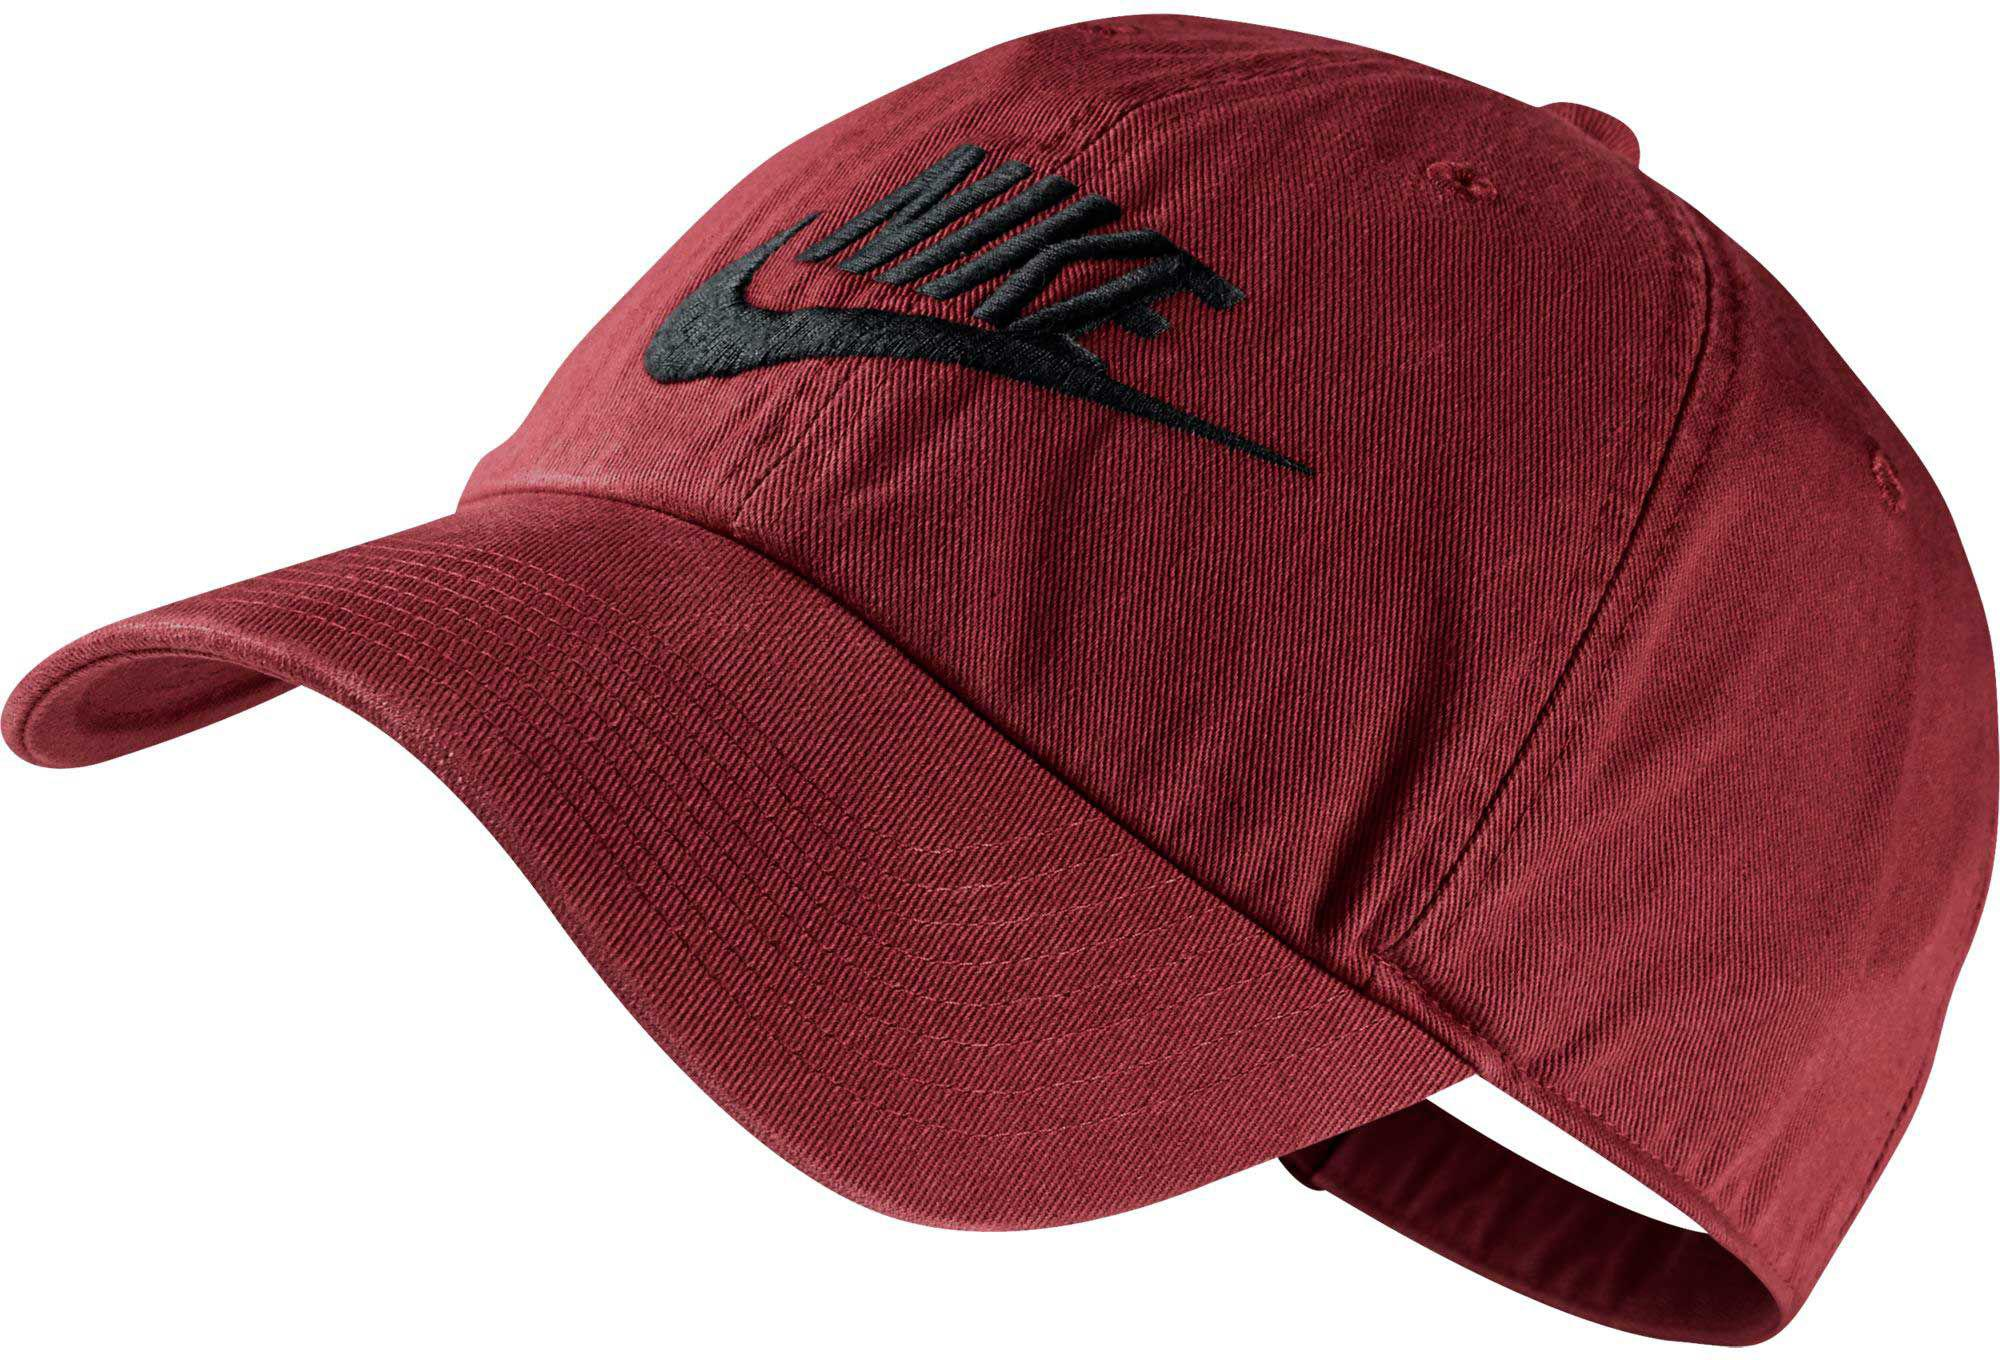 detailed look d98c1 d8ee4 Nike Heritage 86 Futura Adjustable Hat in Red for Men - Lyst